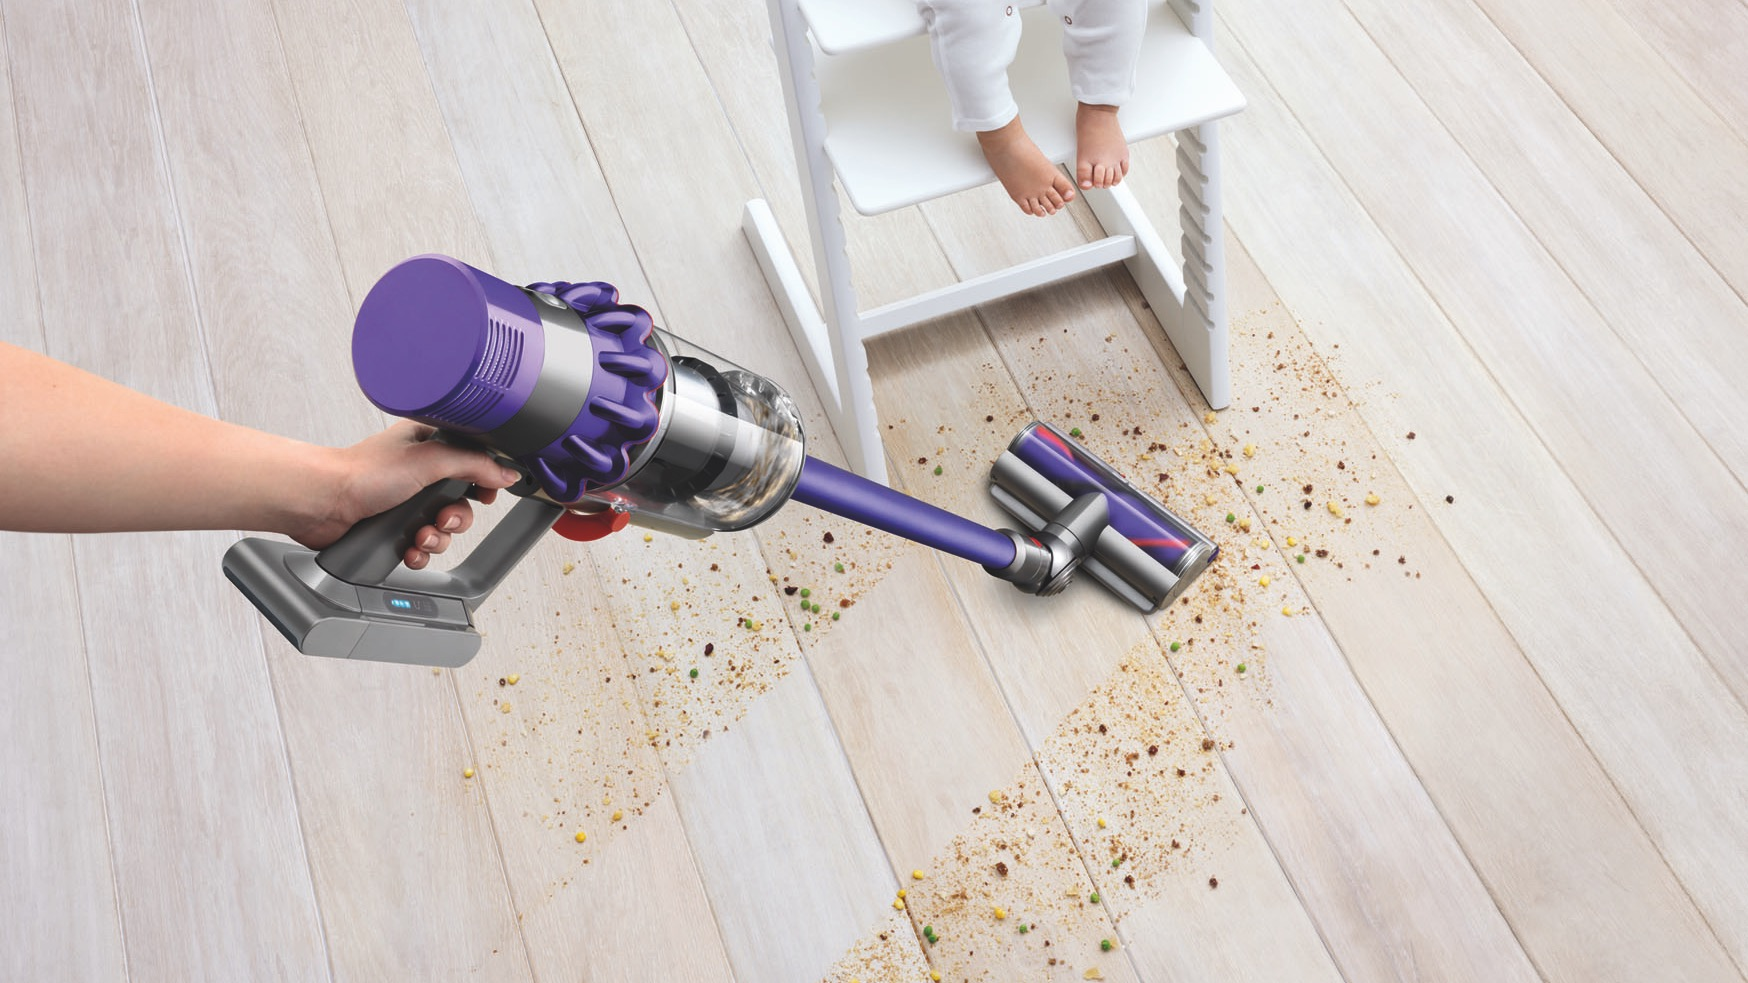 Dyson is done with corded vacuums as the powerful Cyclone V10 looks ...